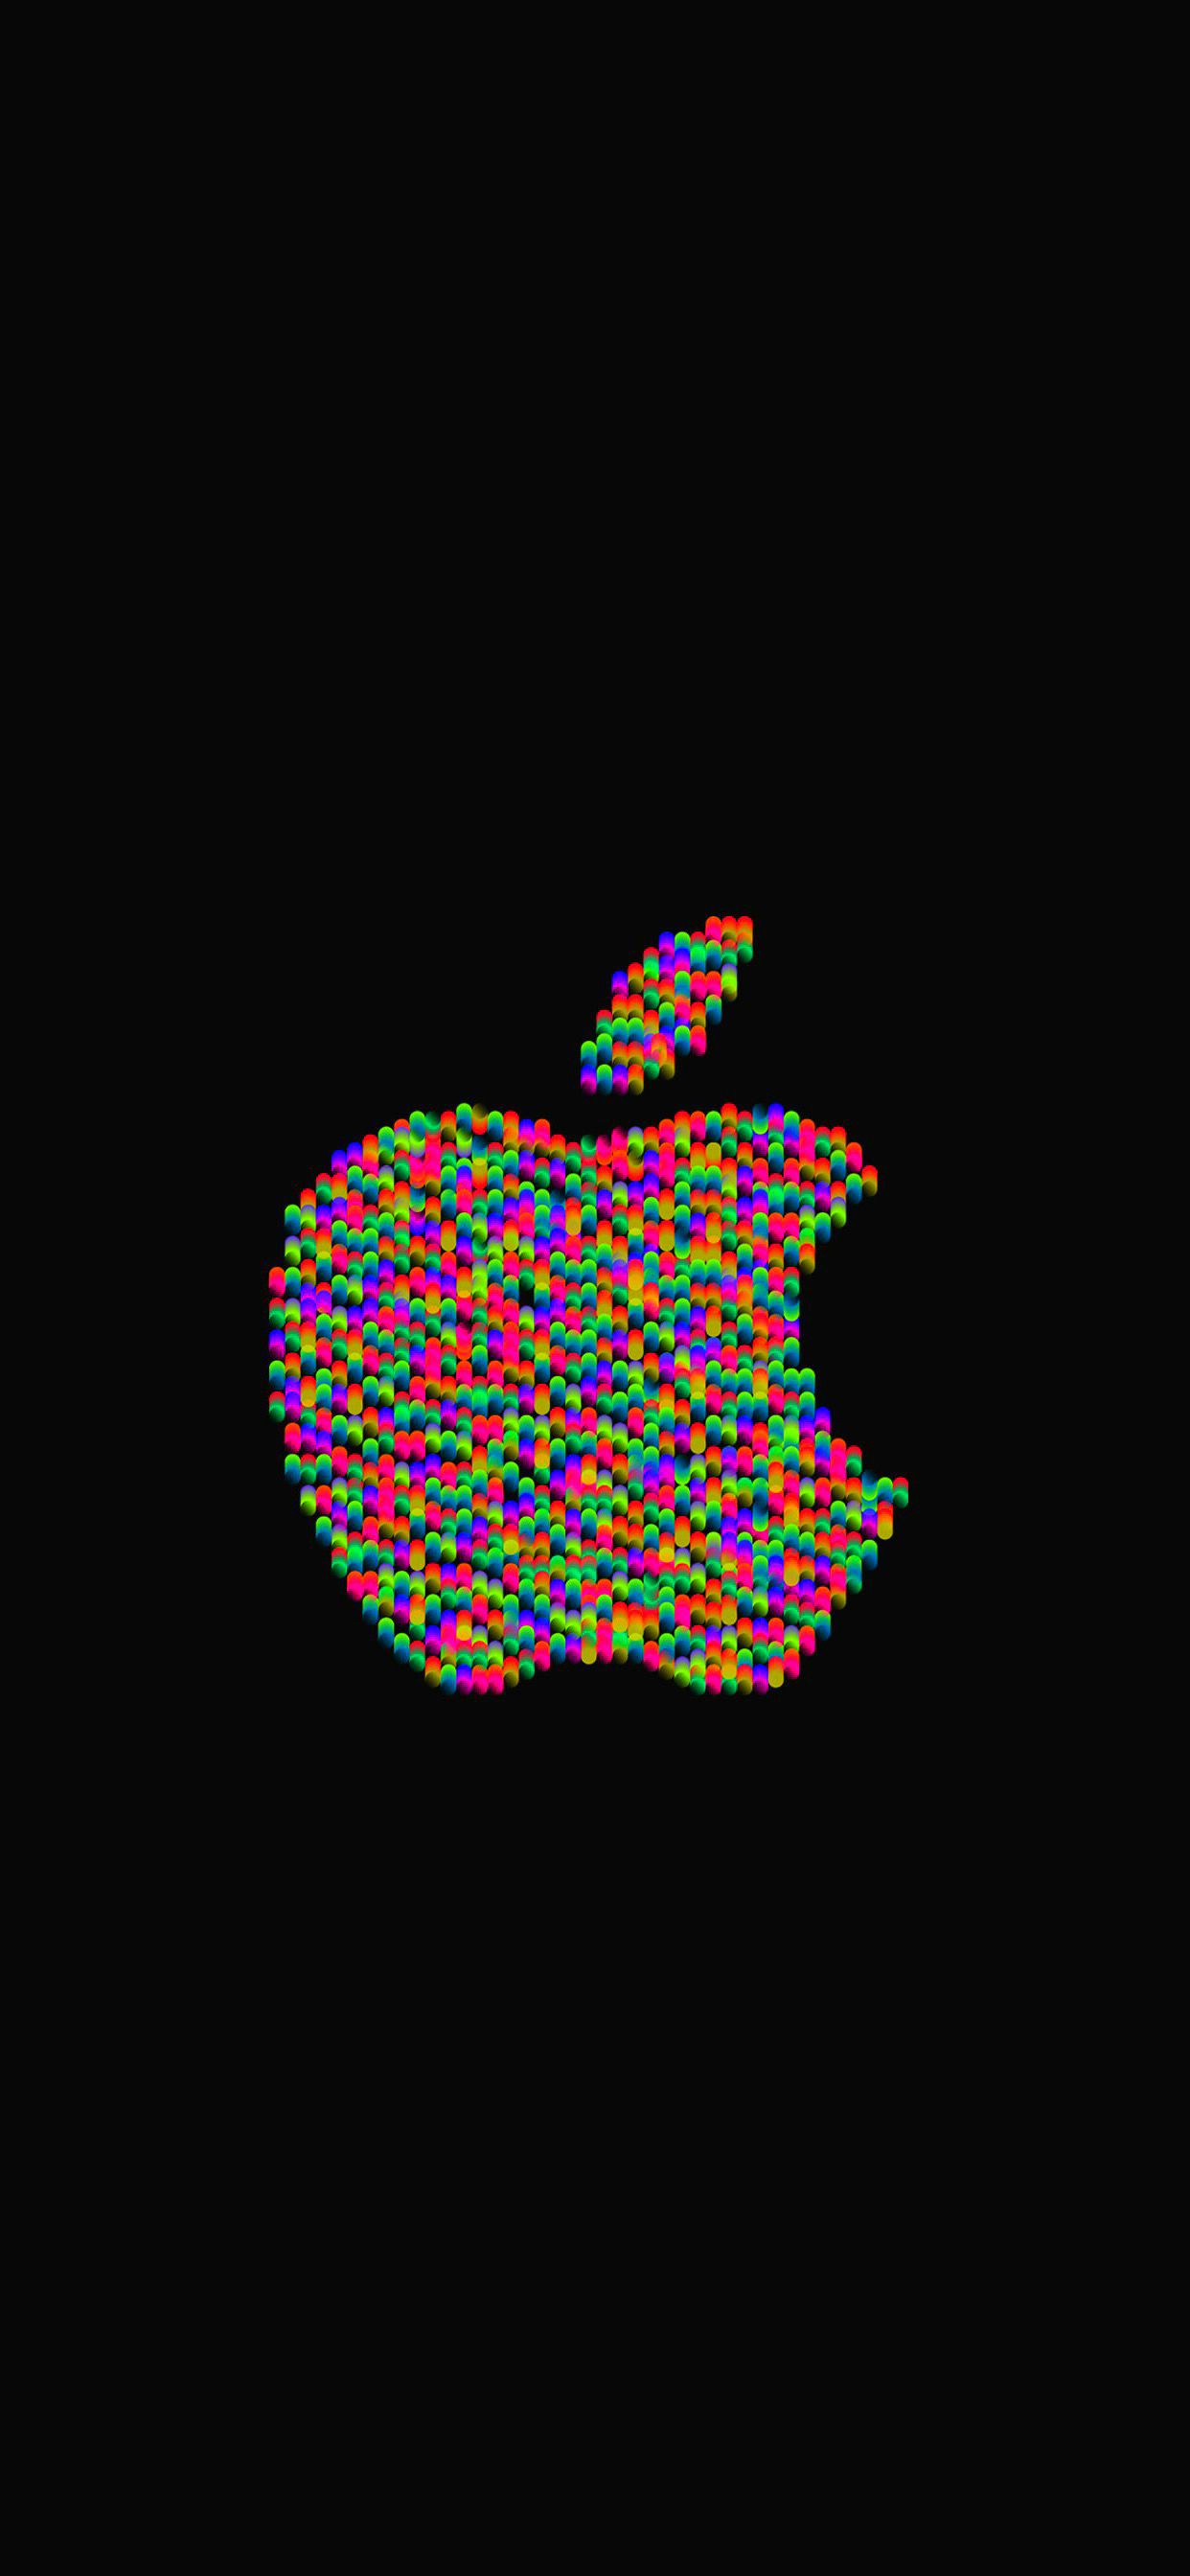 applelogo appleiphone appleipad iOS13 iphonewallpaper